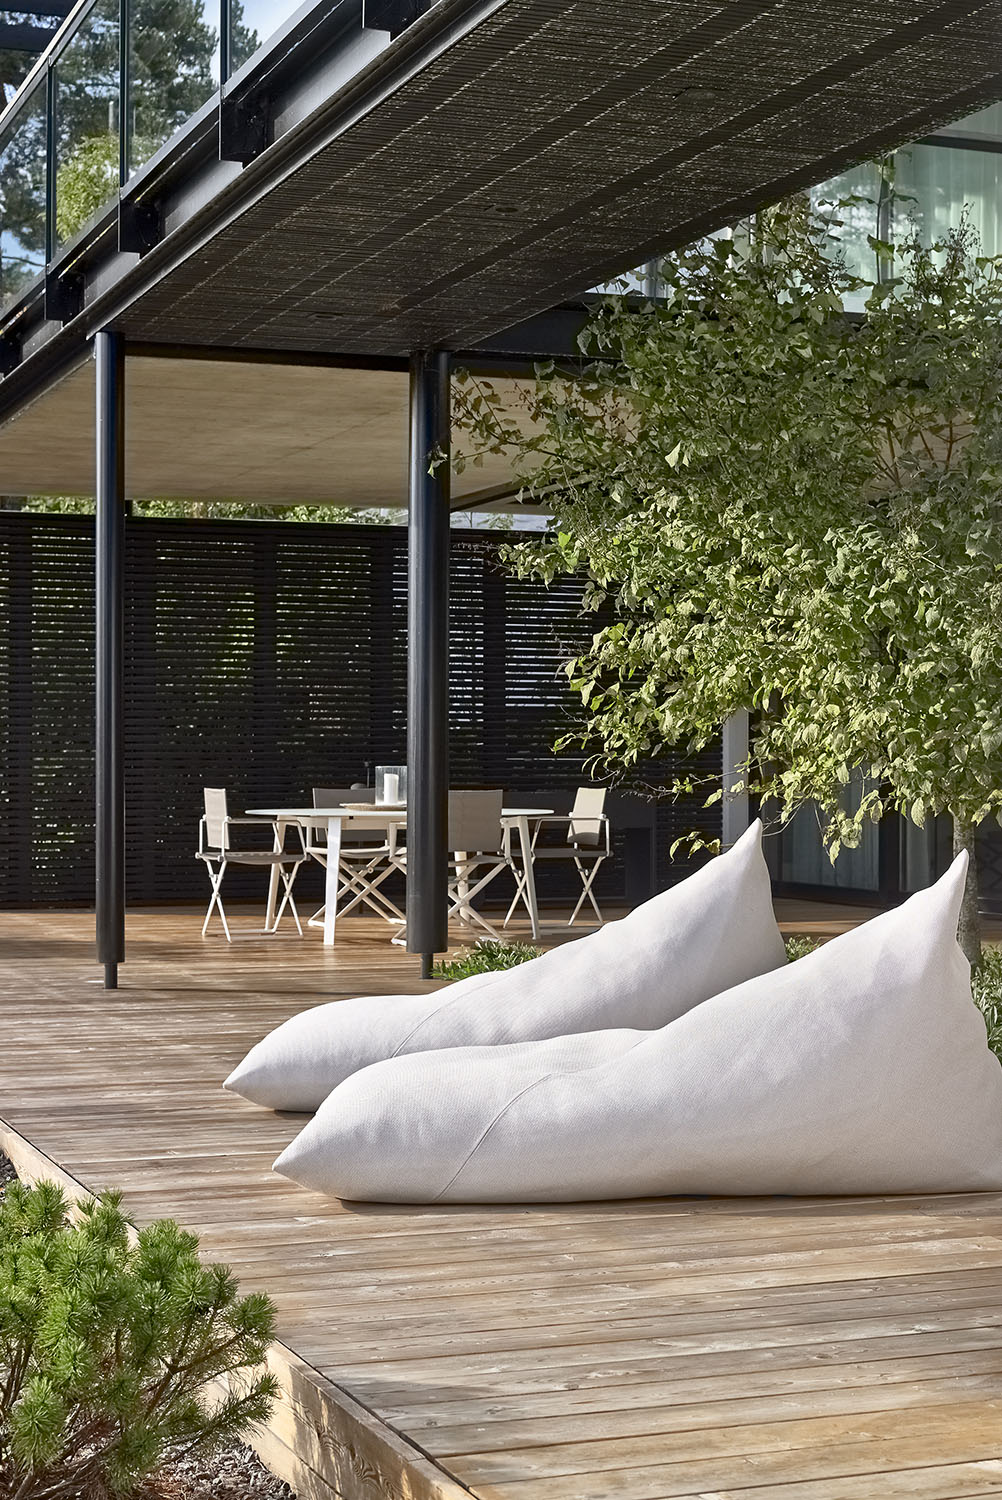 Outdoor Roo lounge chairs upholstered with Woodnotes Saimaa outdoor fabric col. natural white.